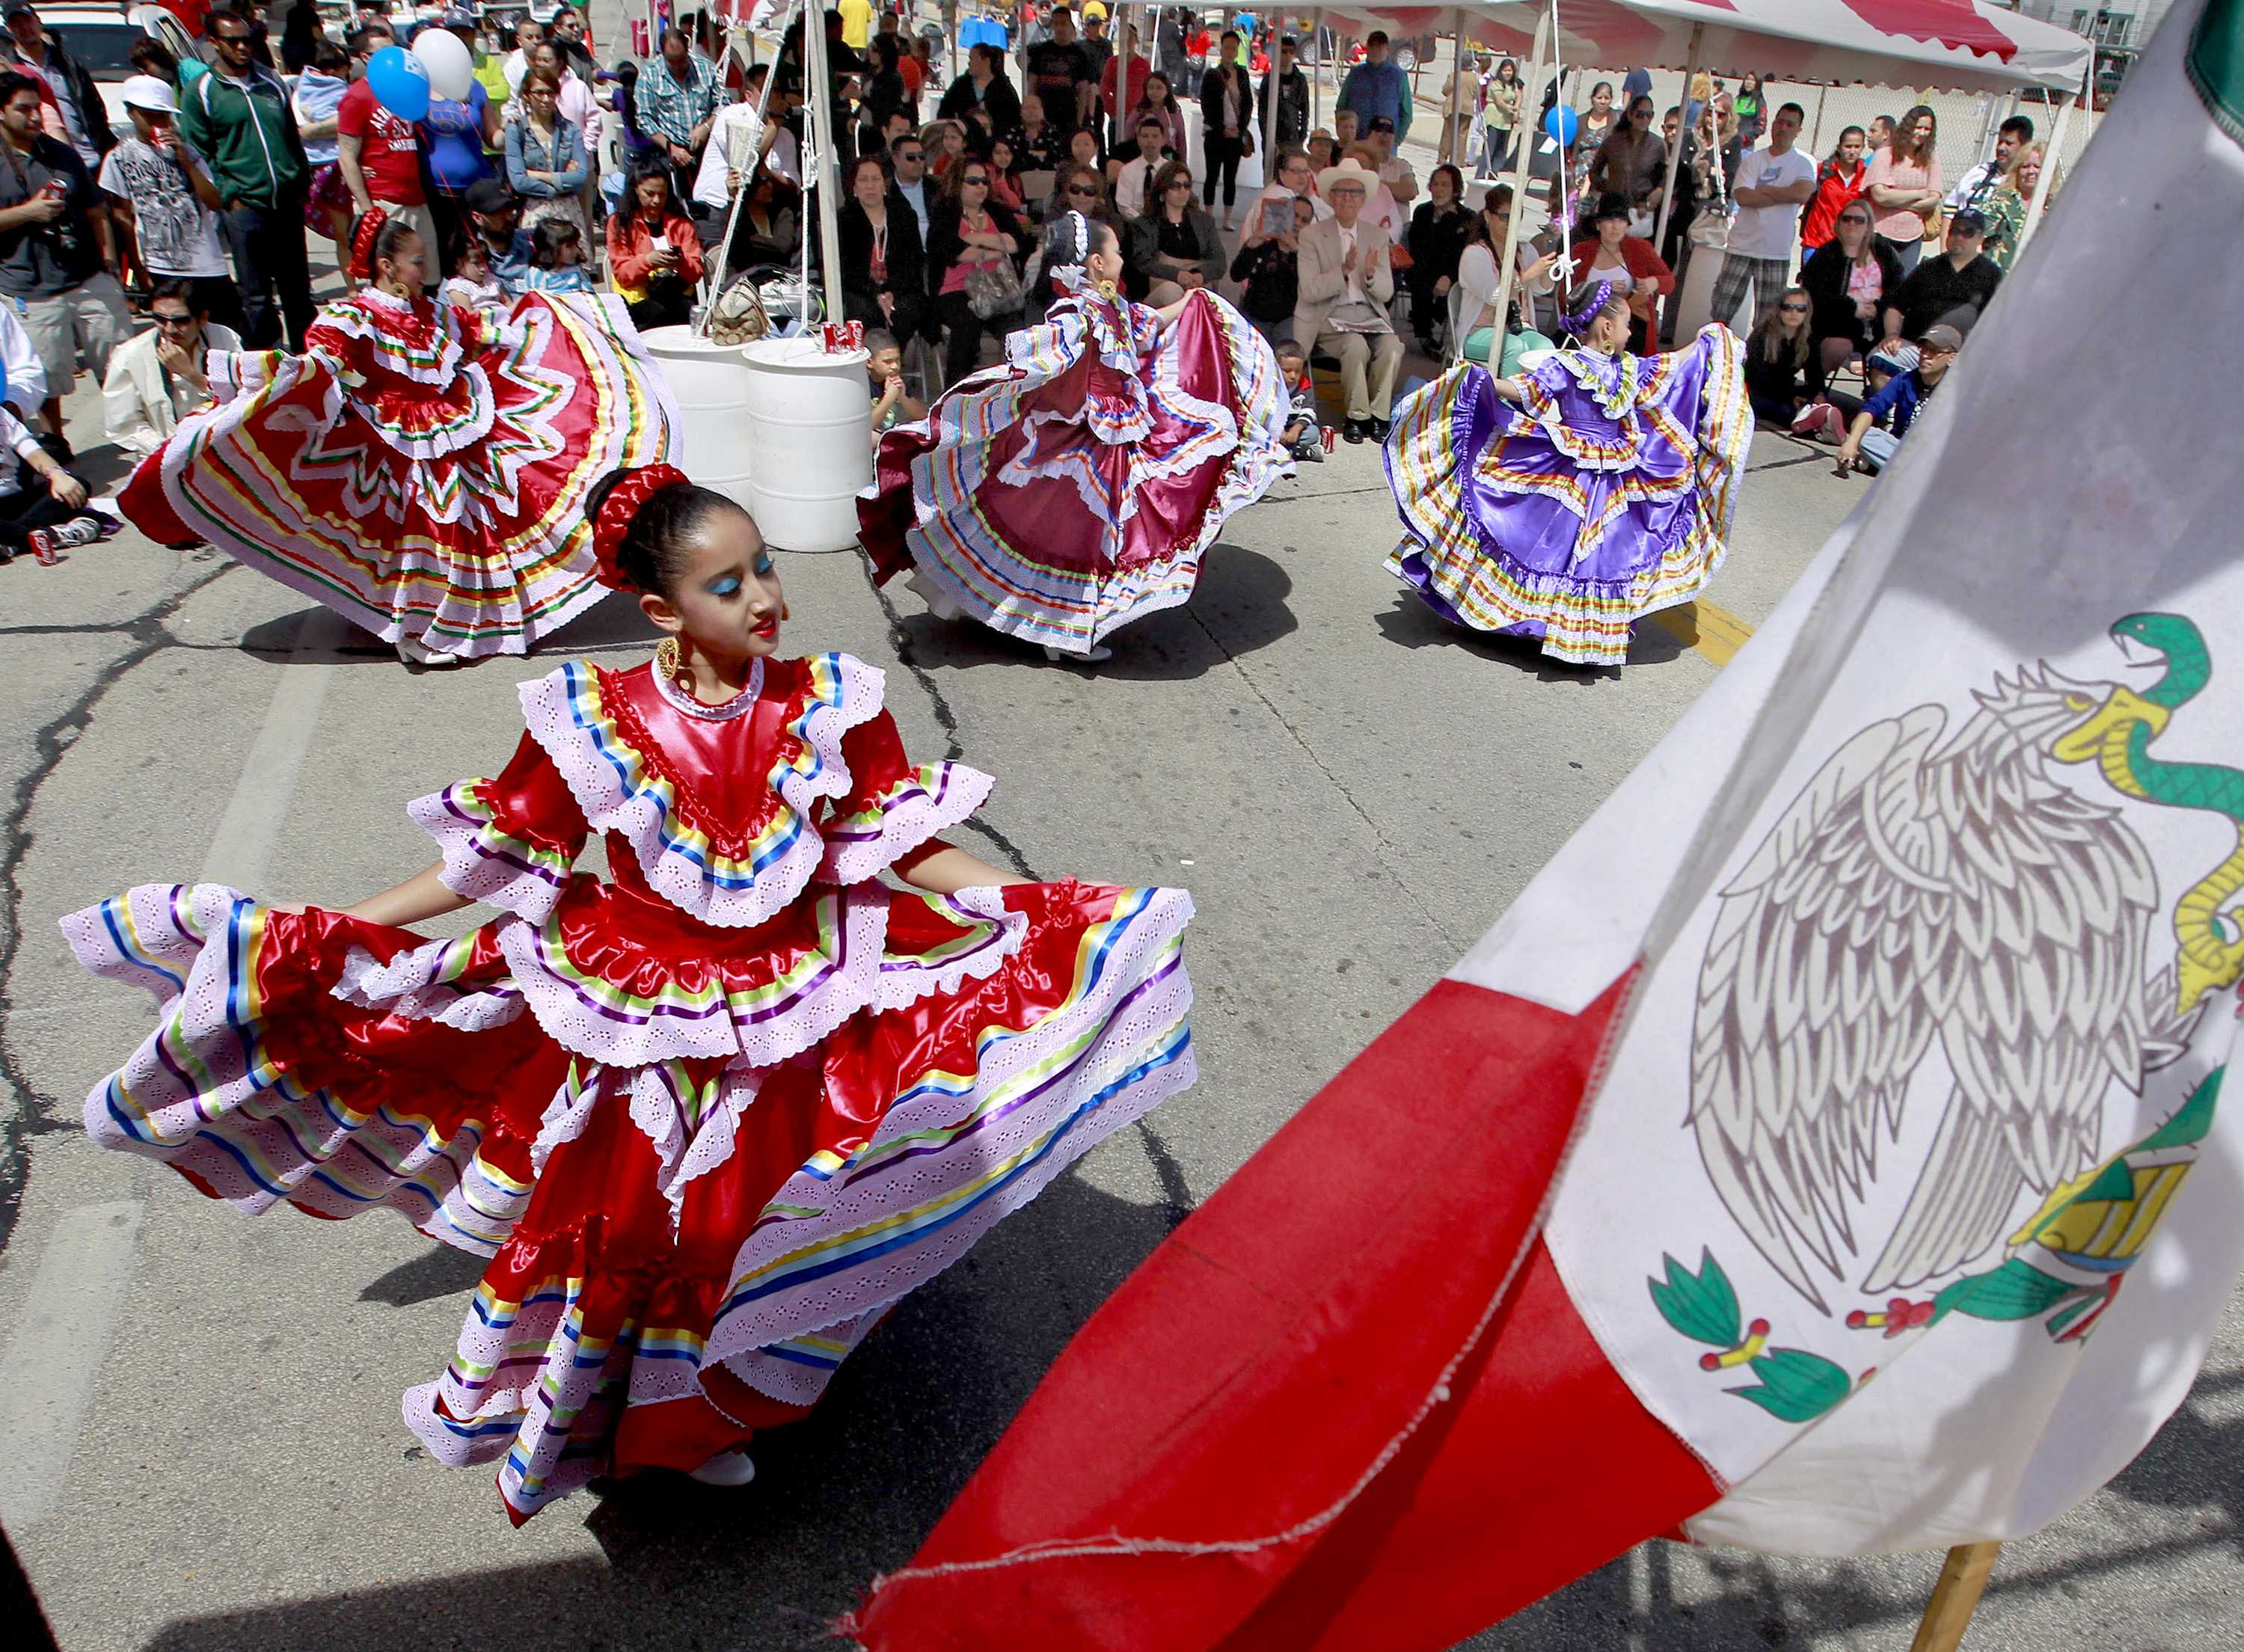 Members of Dance Academy of Mexico perform during Cinco de Mayo celebrations in Milwaukee, Wisconsin, Sunday, May 5, 2013. (Rick Wood/Milwaukee Journal Sentinel/MCT)